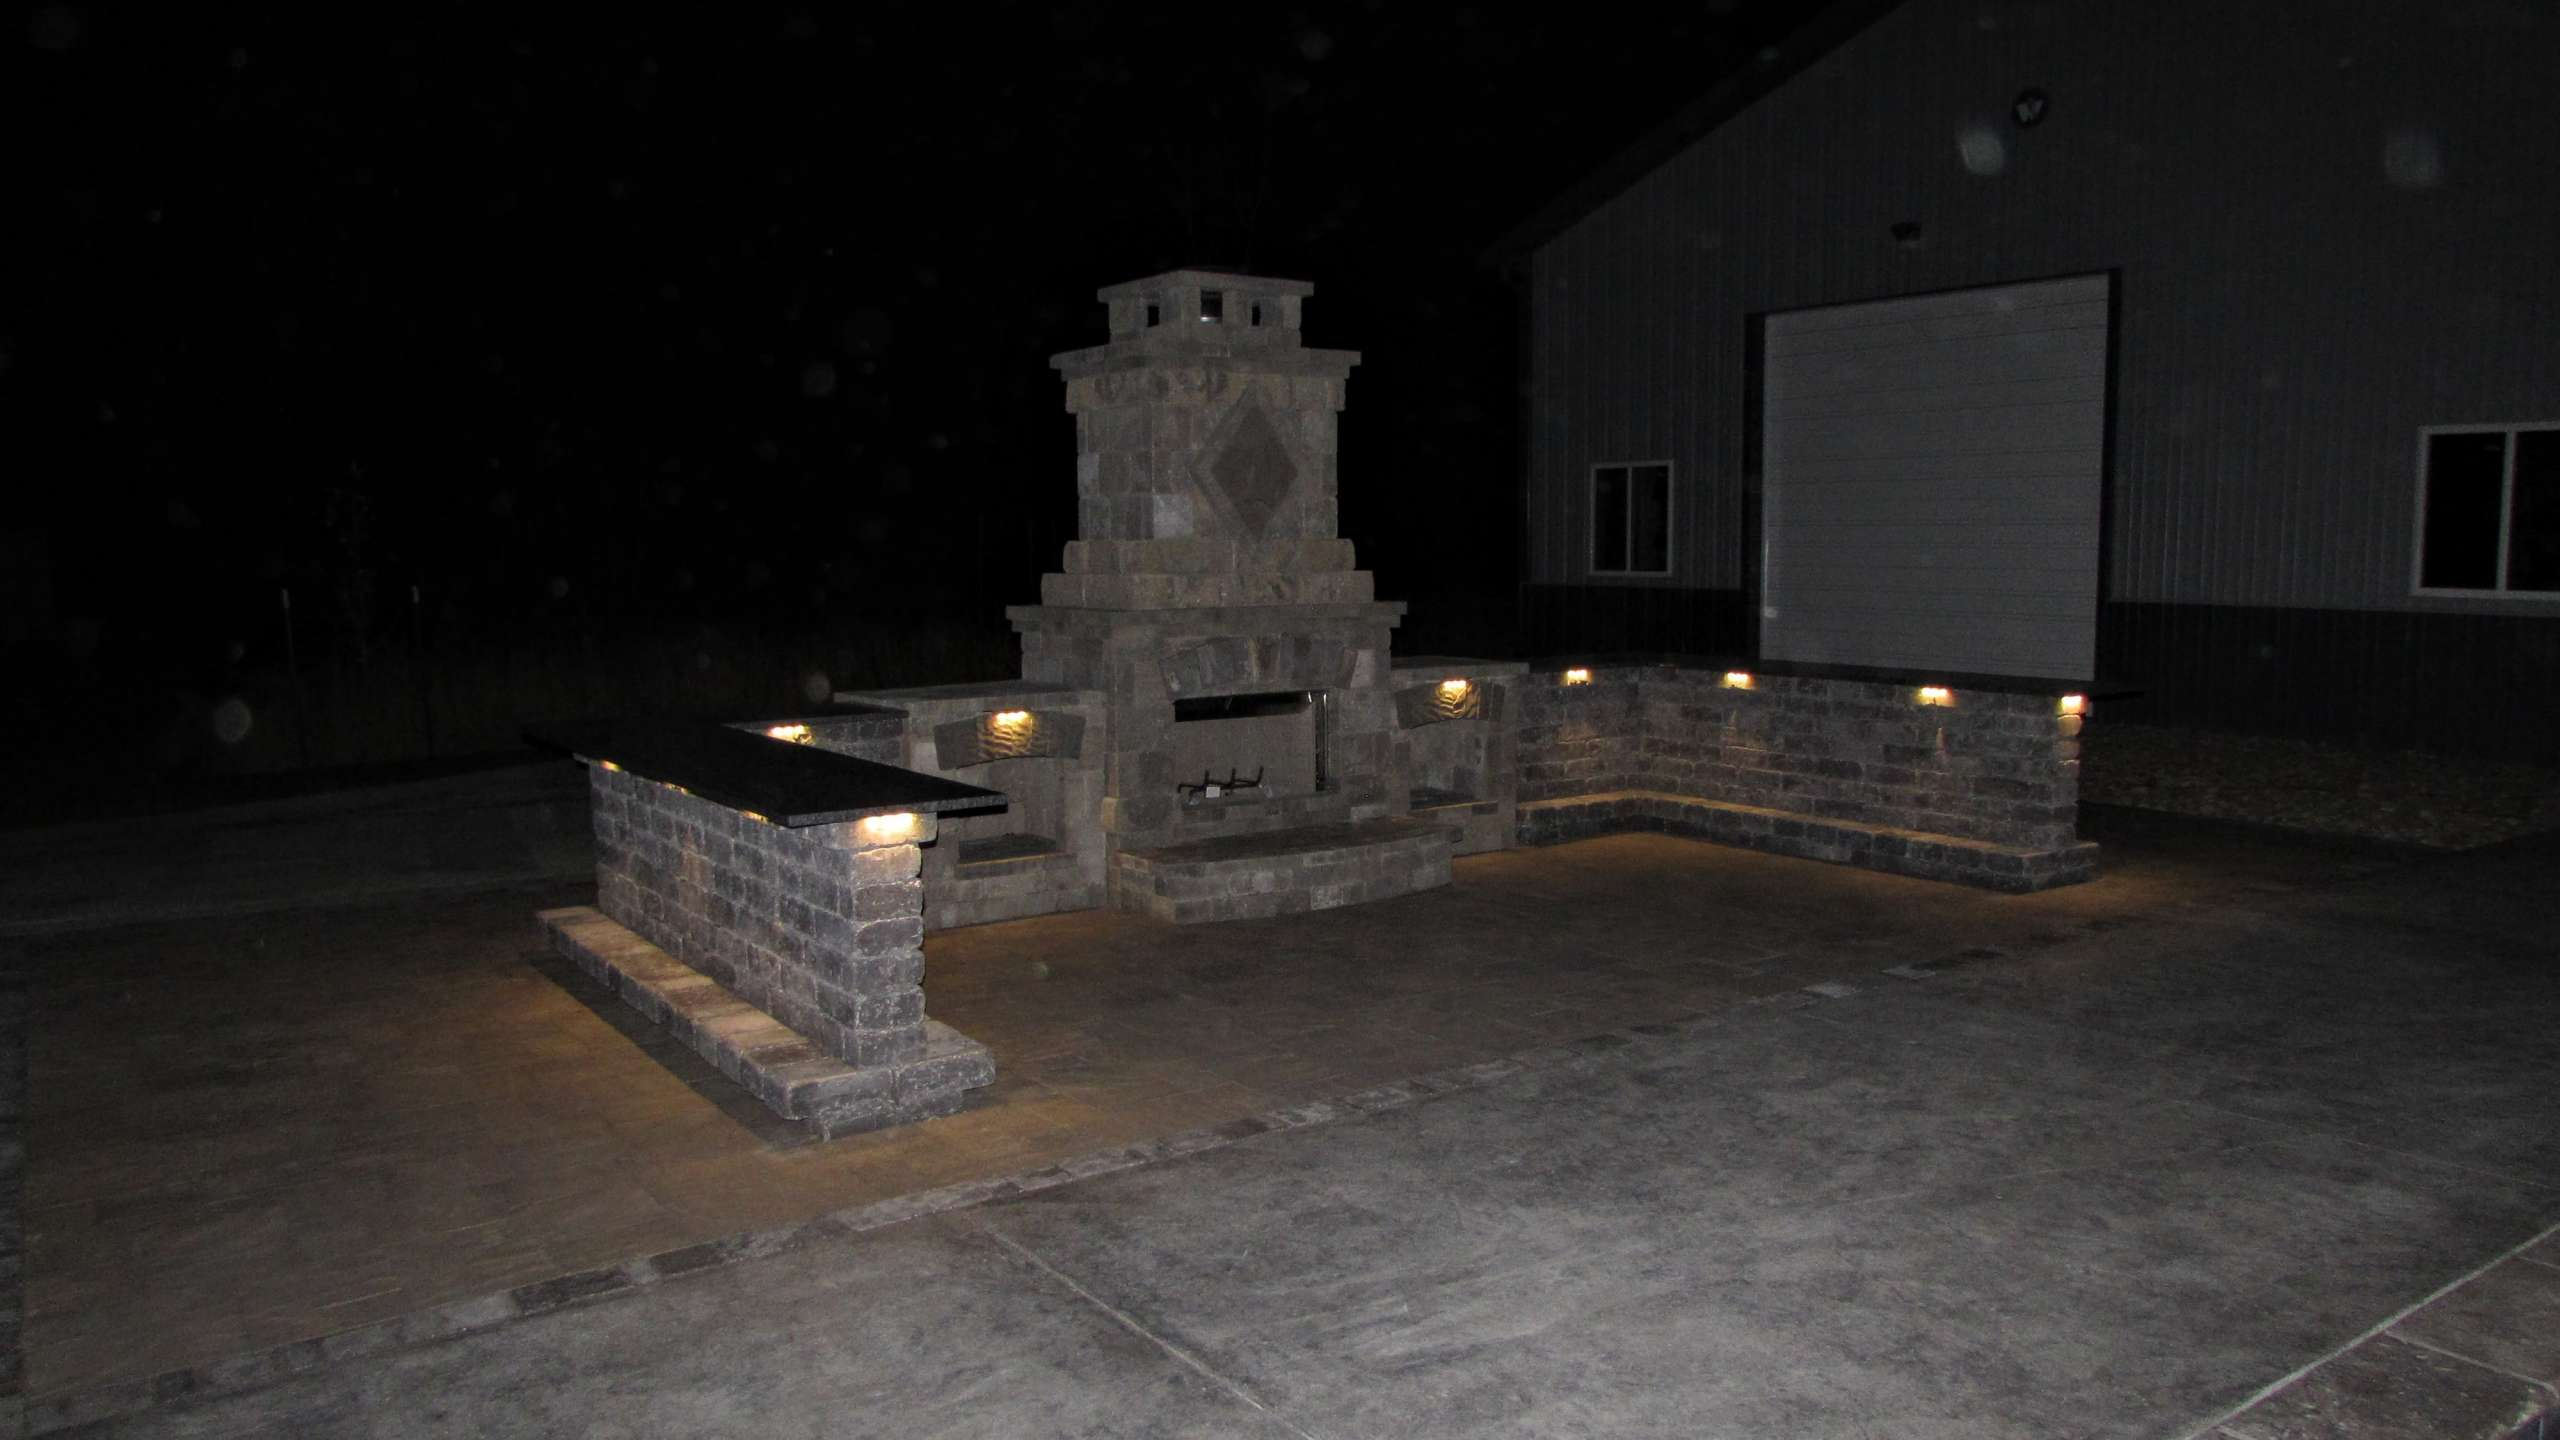 Stone feature being highlighted at night using well placed light structures